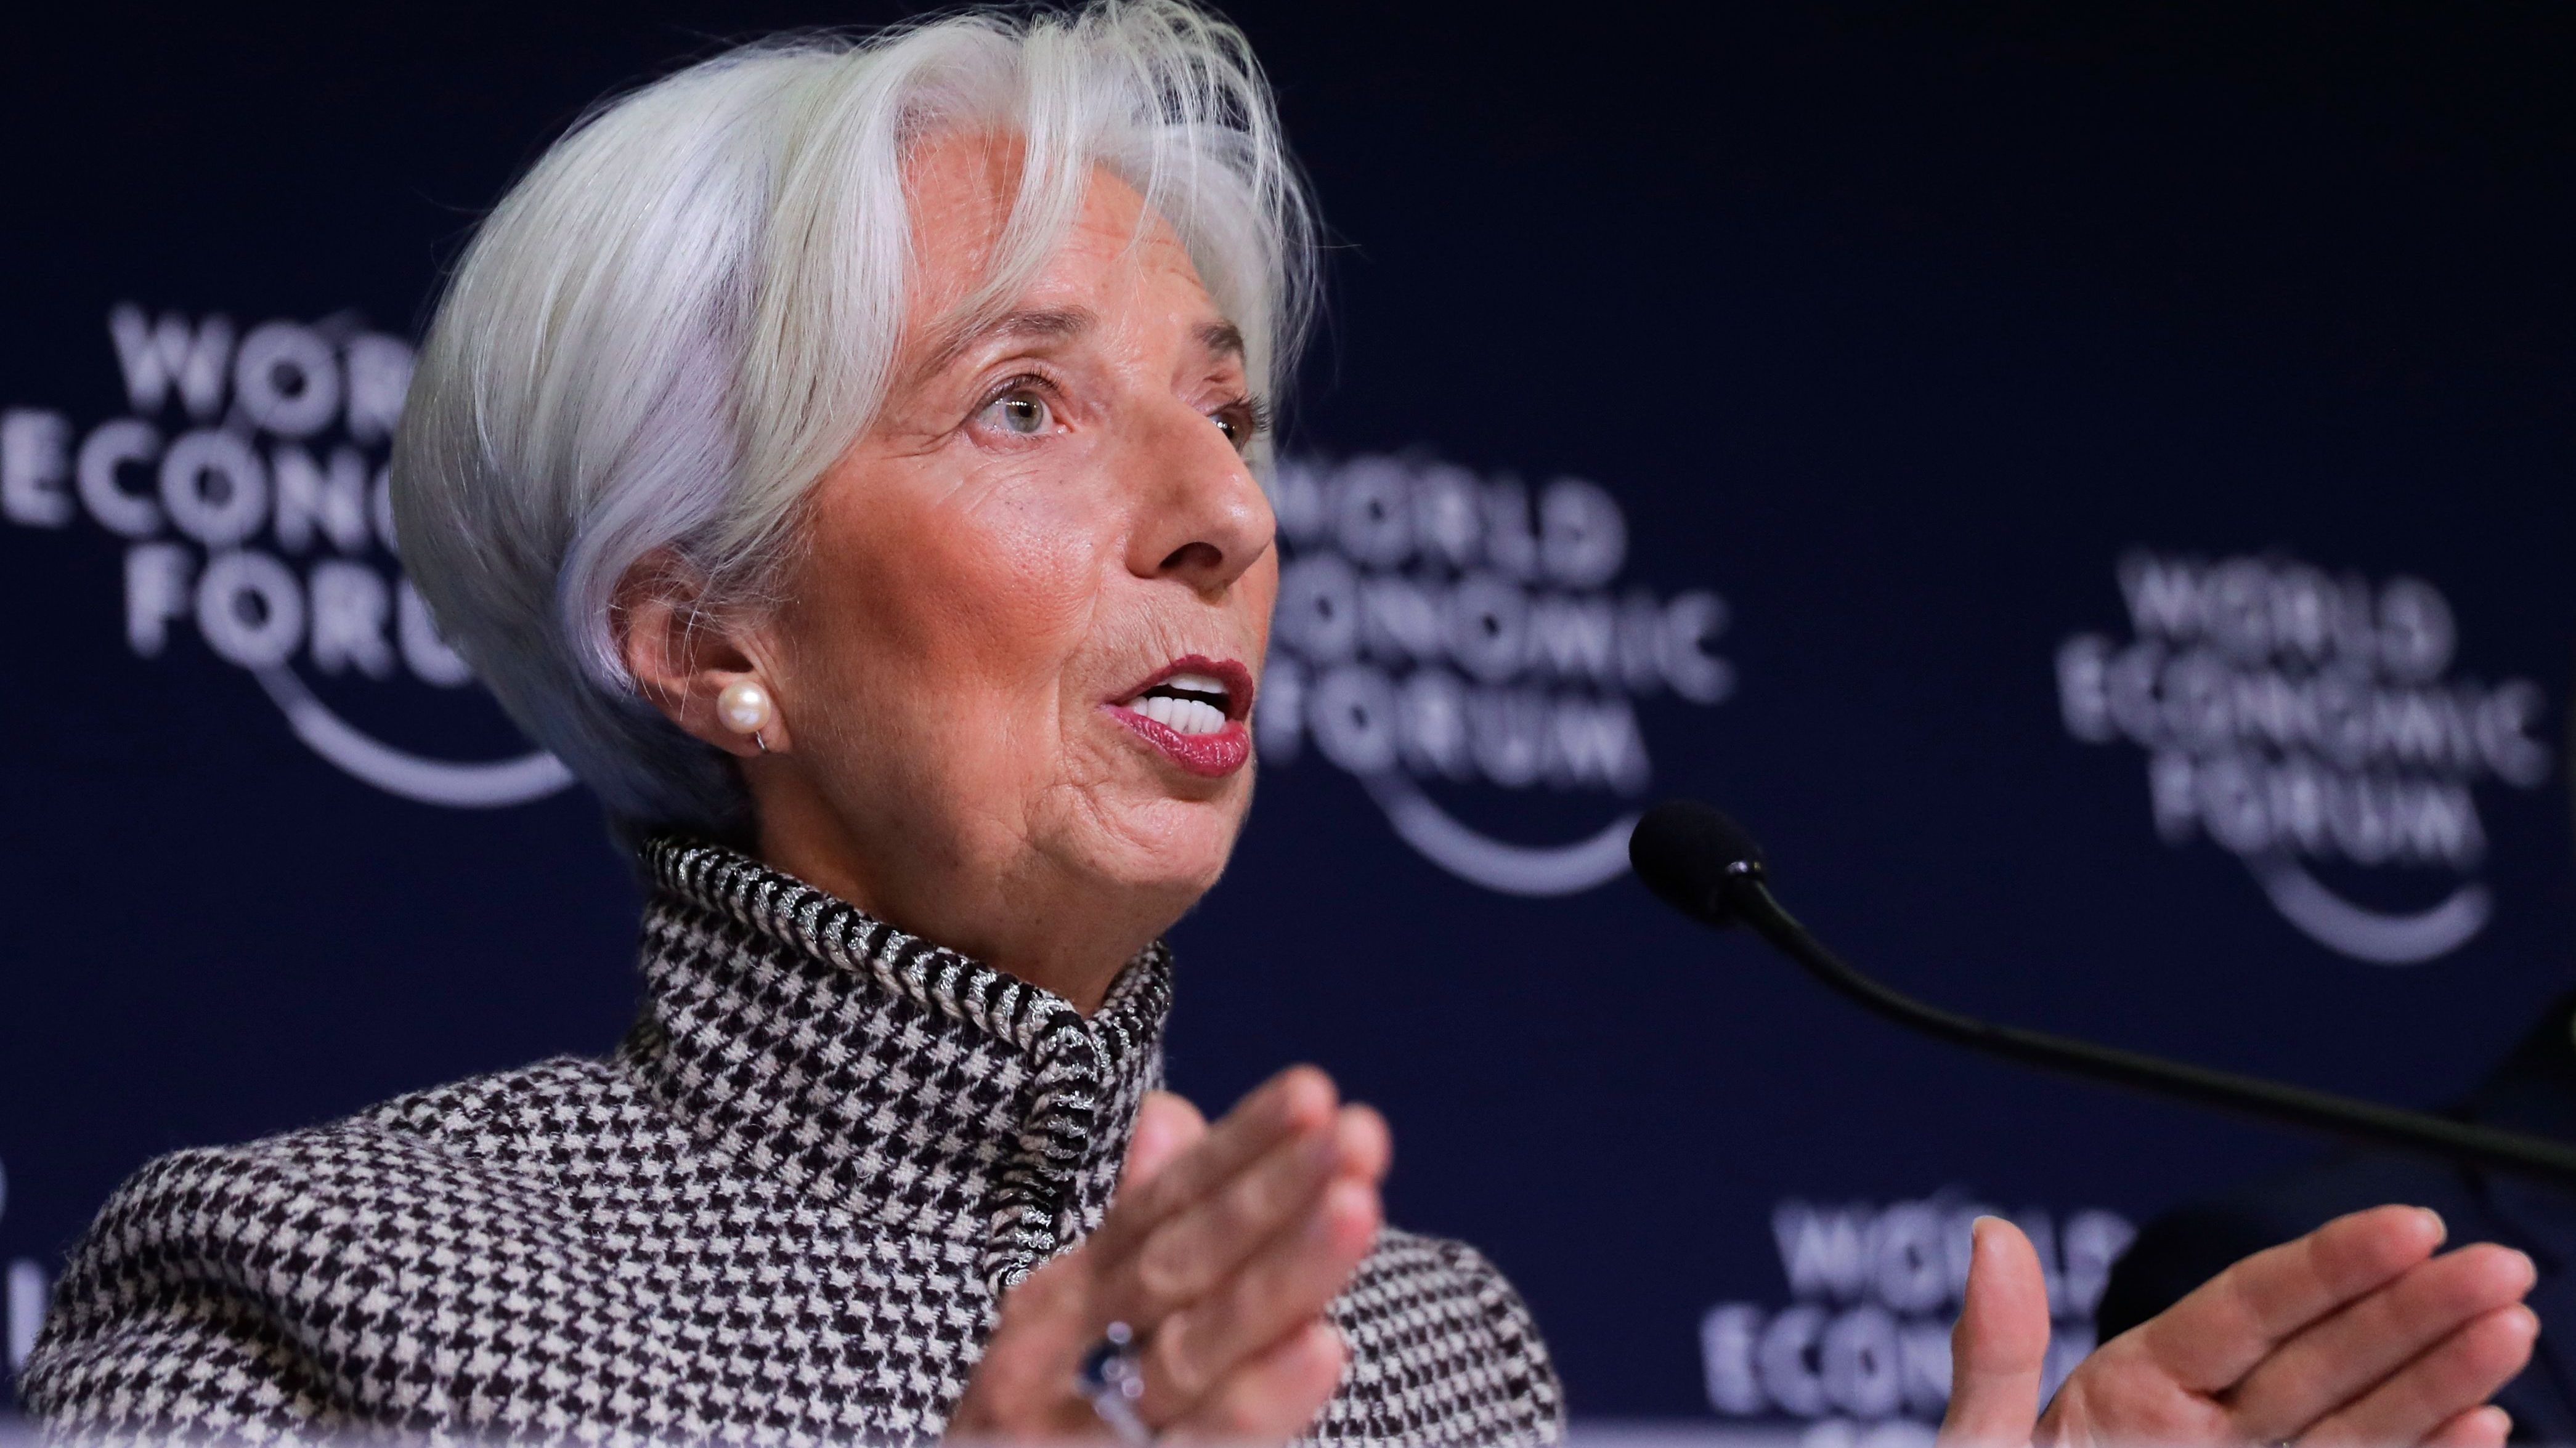 International Monetary Fund Managing Director Christine Lagarde briefs the media during a news conference at the annual meeting of the World Economic Forum, WEF, in Davos, Monday, Jan. 21, 2019.